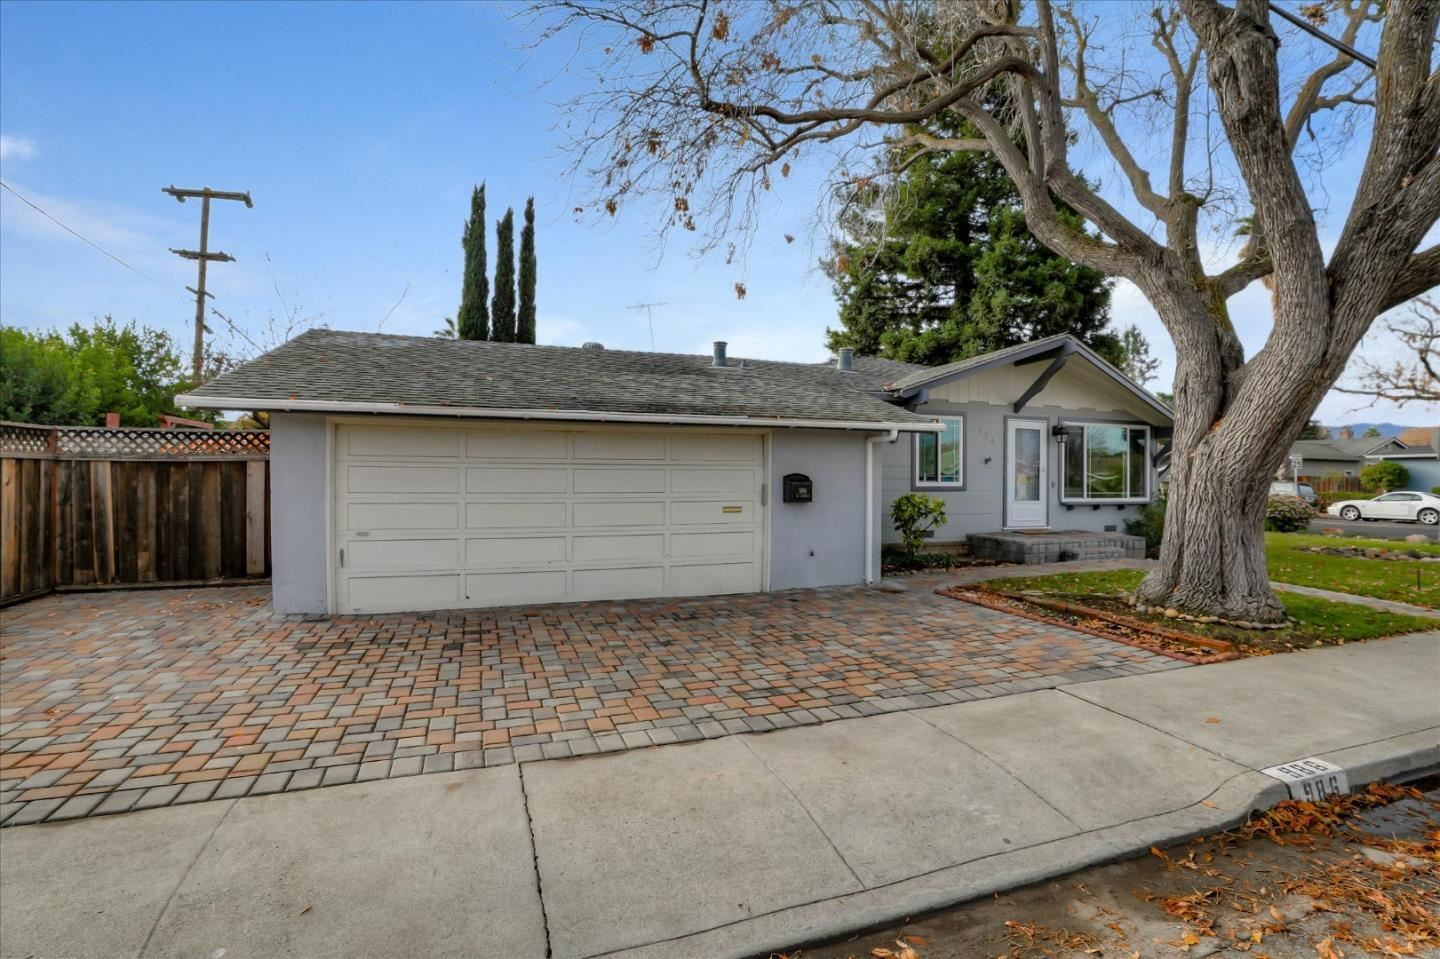 Photo for 986 W Latimer AVE, CAMPBELL, CA 95008 (MLS # ML81823449)